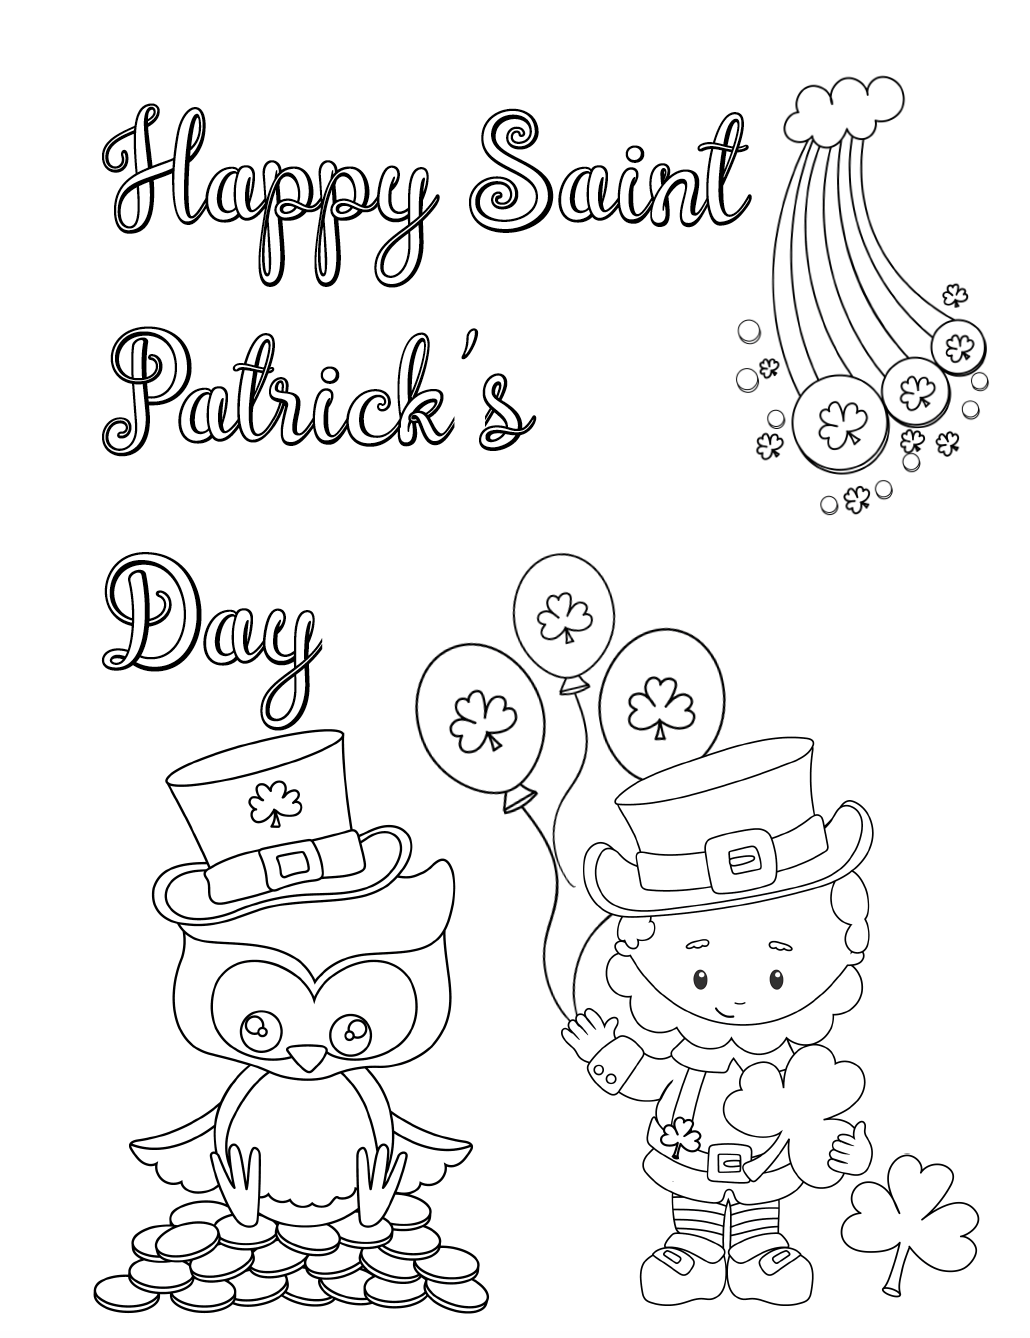 Free Printable St. Patrick's Day Coloring Pages. 4 different designs…fun for the kids. Just download, print, and let the kids start coloring! #stpatrick #stpatricks #stpat #coloring #free #printable #freeprintable